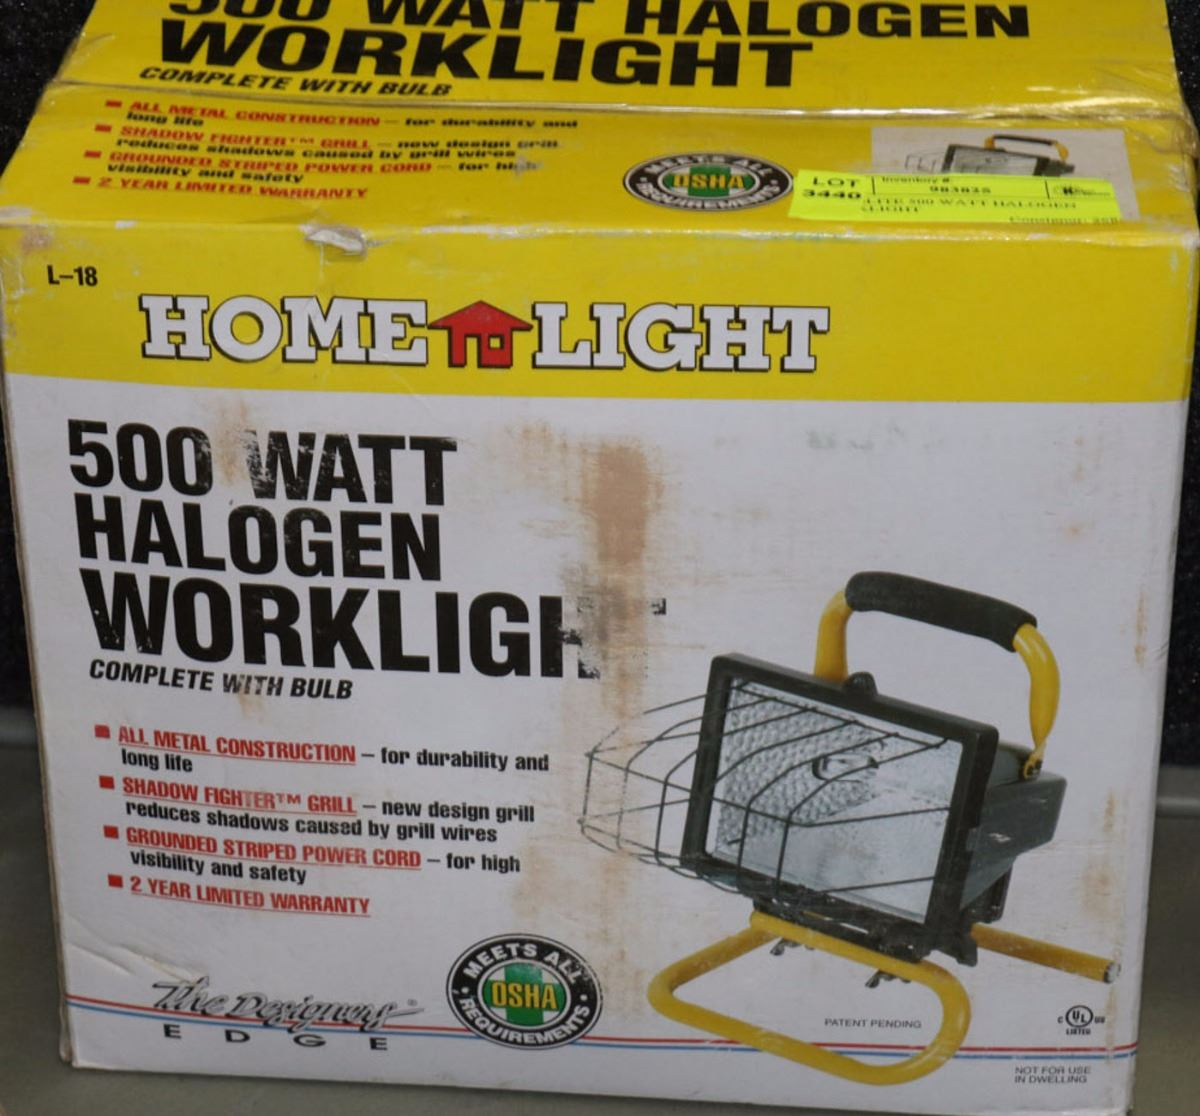 Craftsman 500 Watt Halogen Worklight: HOMELITE 500 WATT HALOGEN WORKLIGHT